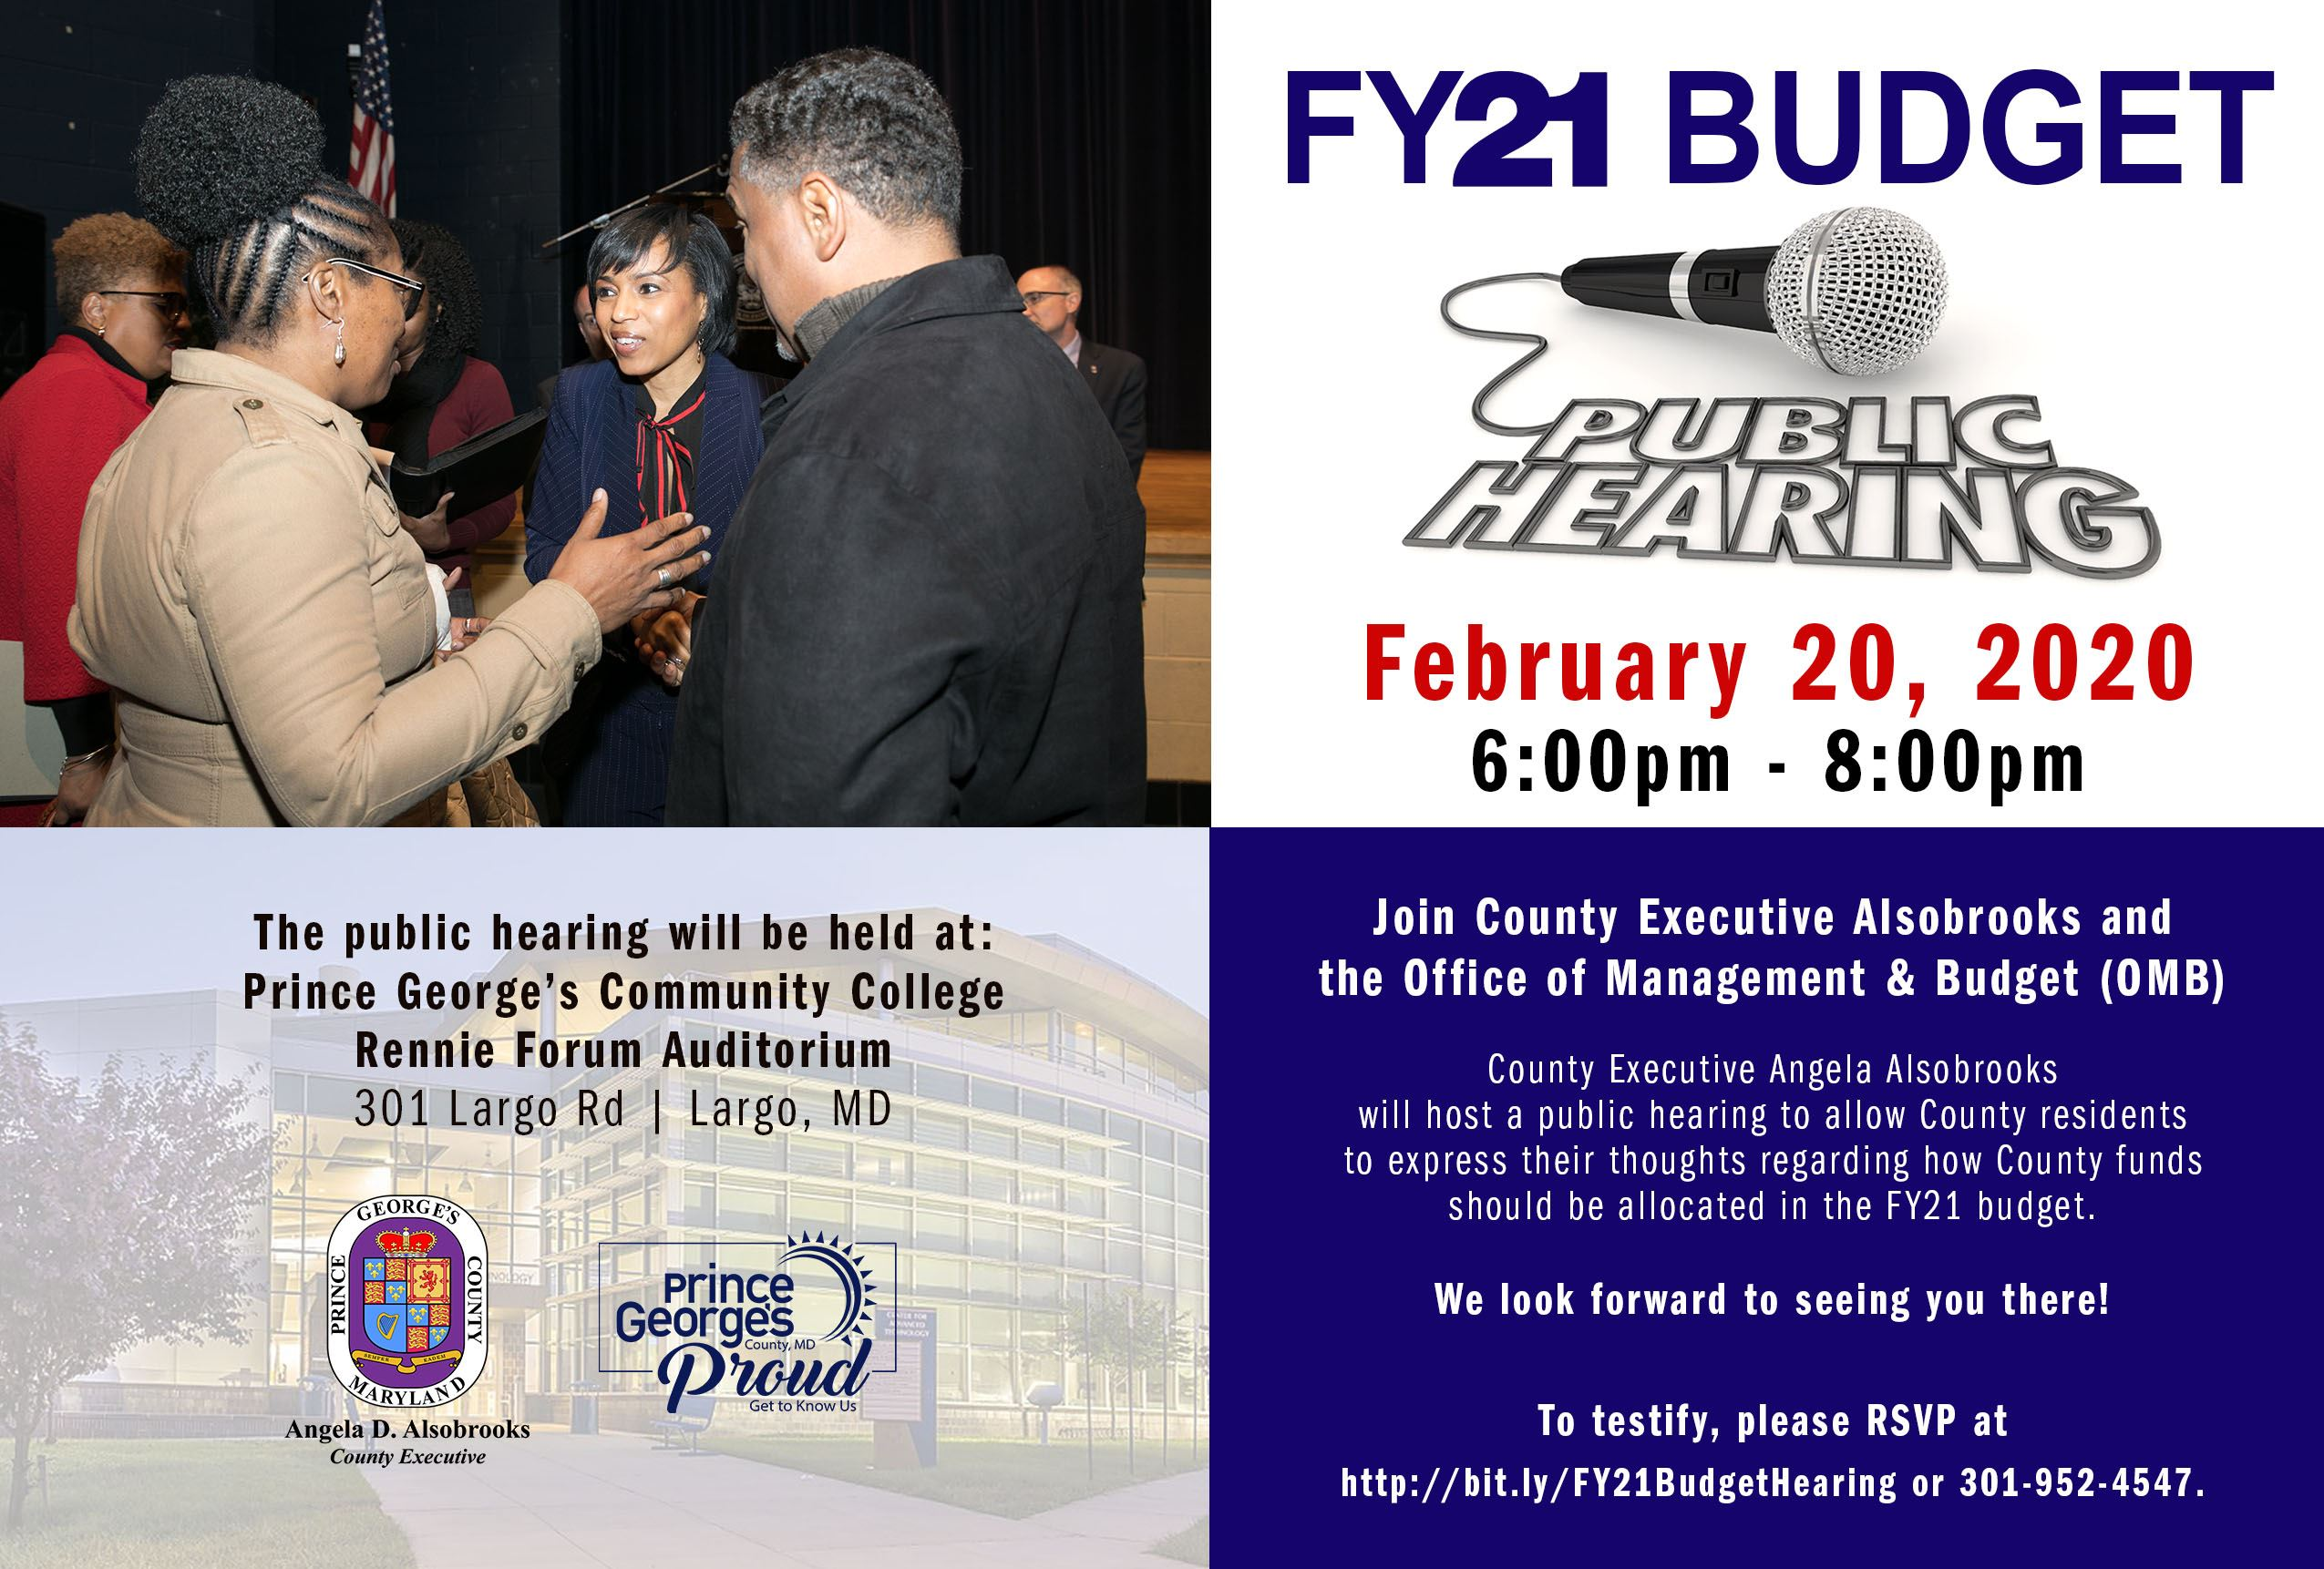 Flyer for the Fiscal Year Budget Public Hearing on February 20th at 6 p.m.